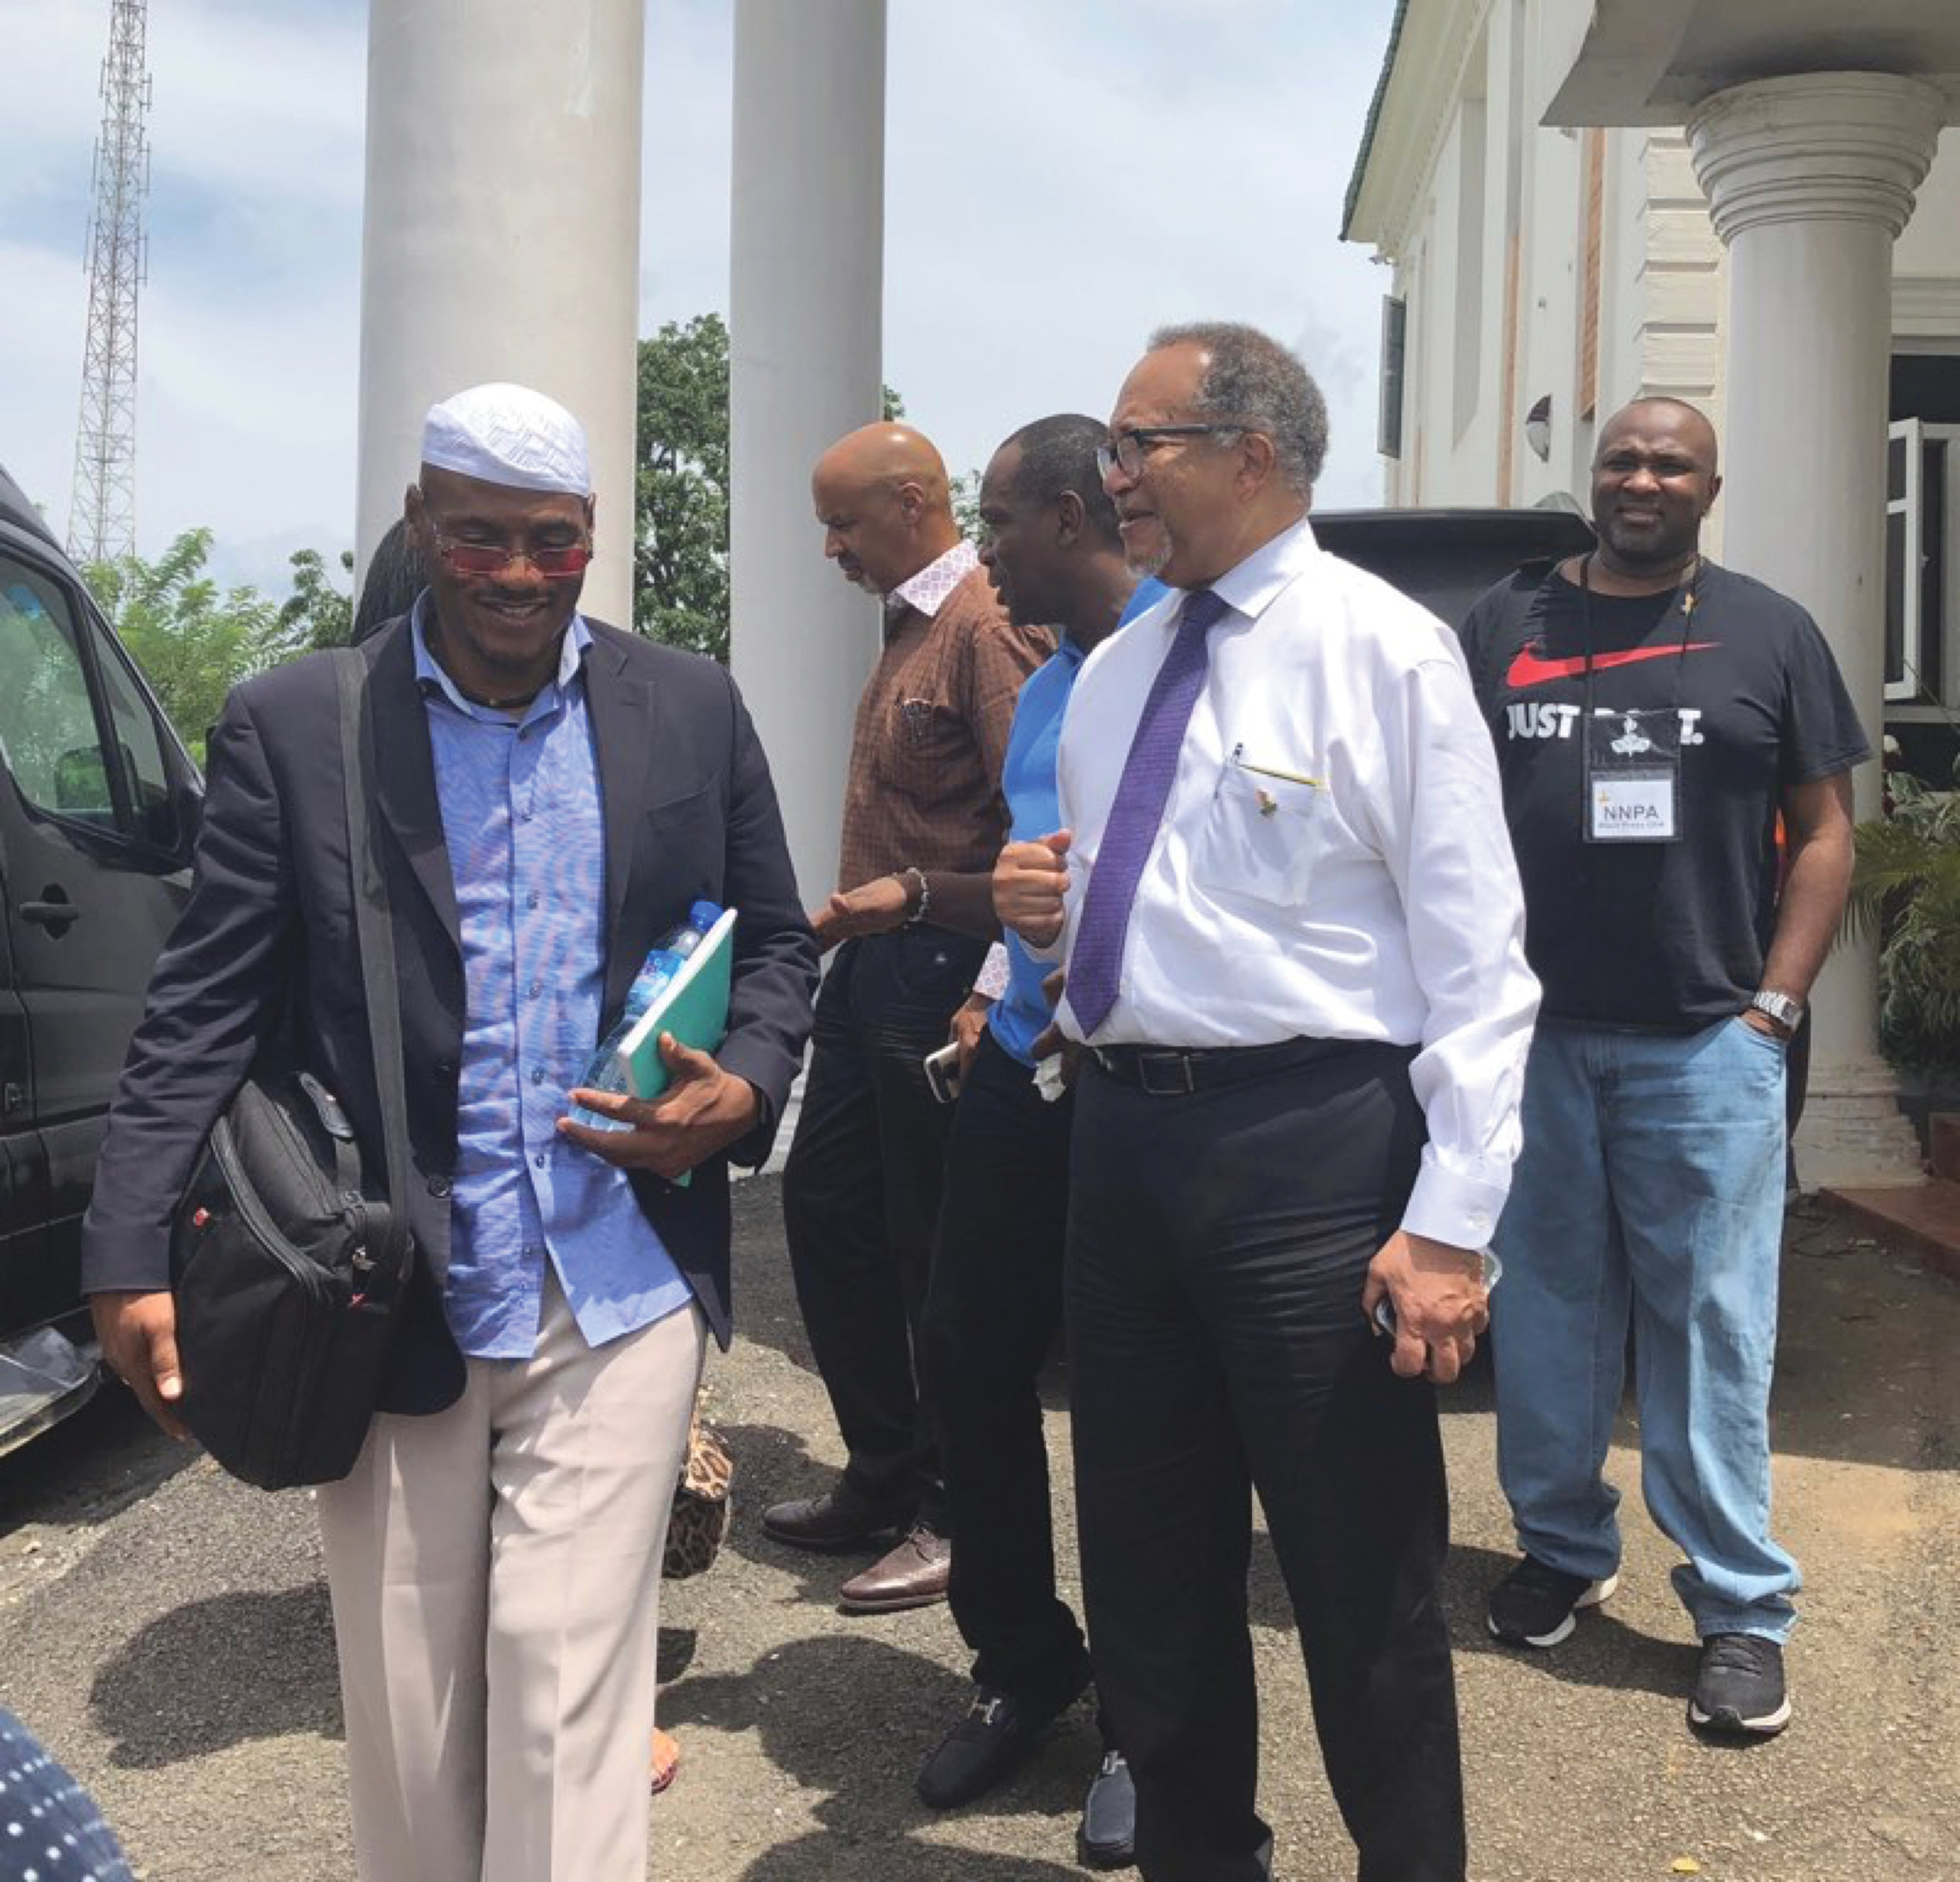 """It has truly been a blessing to be a part of this unique and meaningful pilgrimage to Ile-Ife, Nigeria,"" said Dr. Benjamin F. Chavis, Jr., NNPA President and CEO."